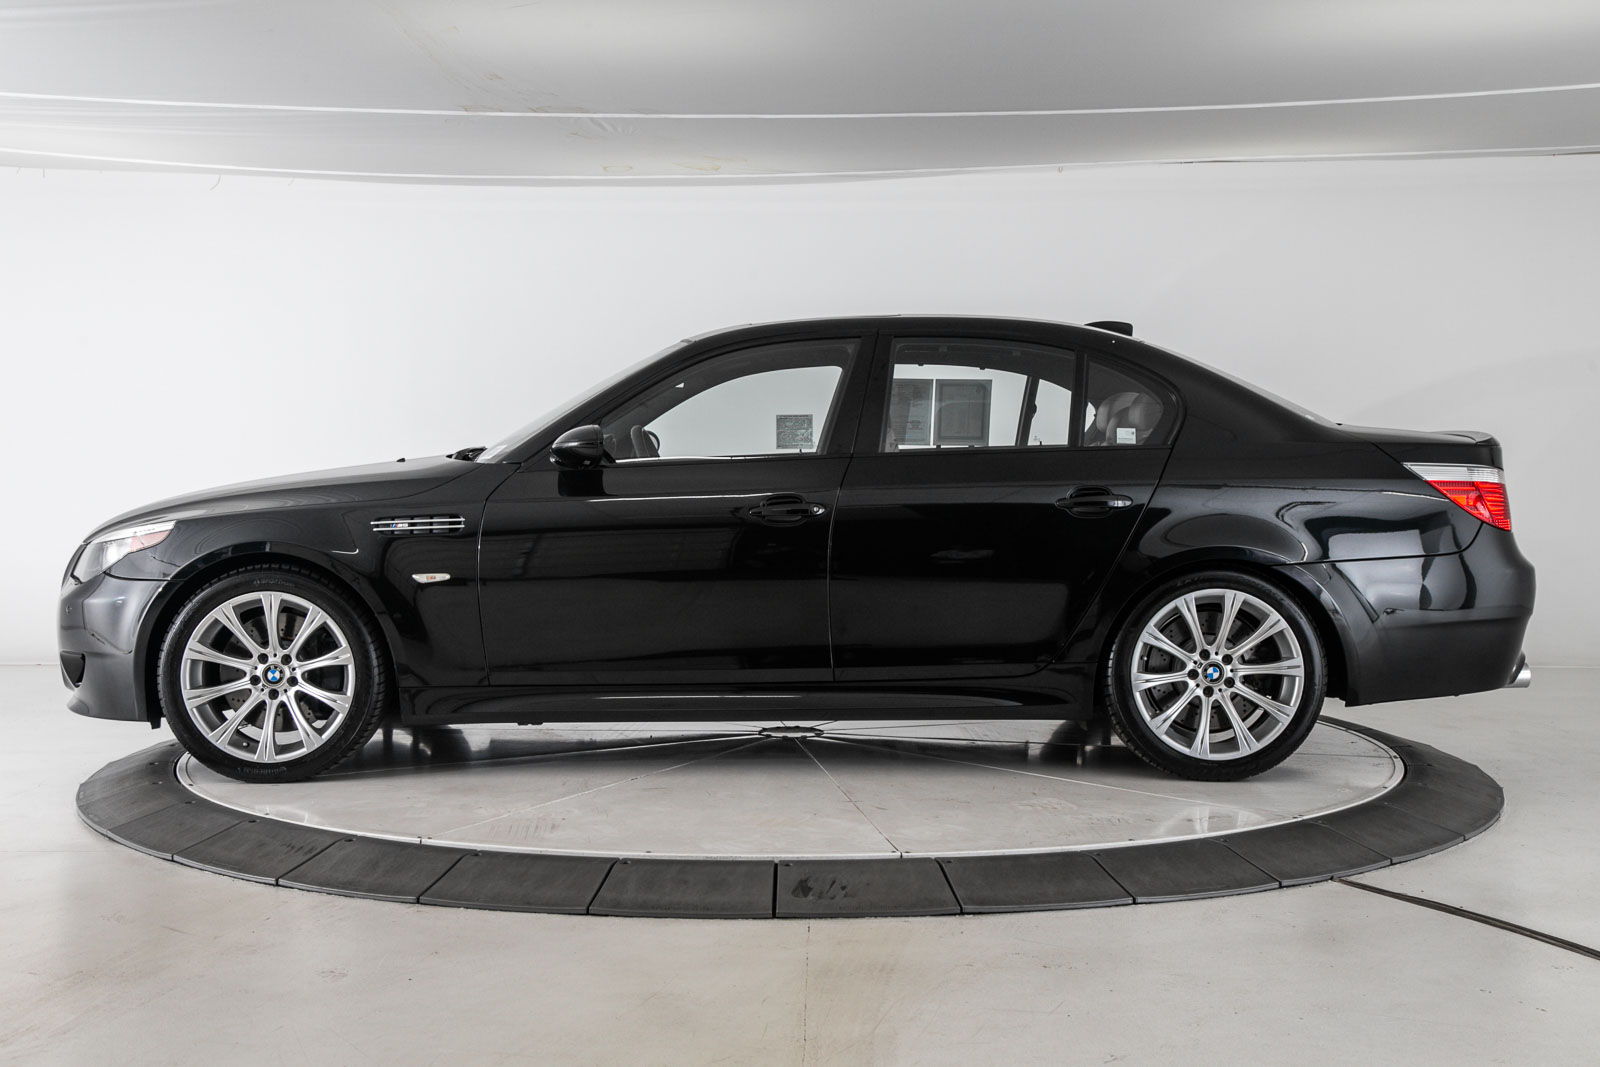 Pre-Owned 2006 BMW M5 Sedan